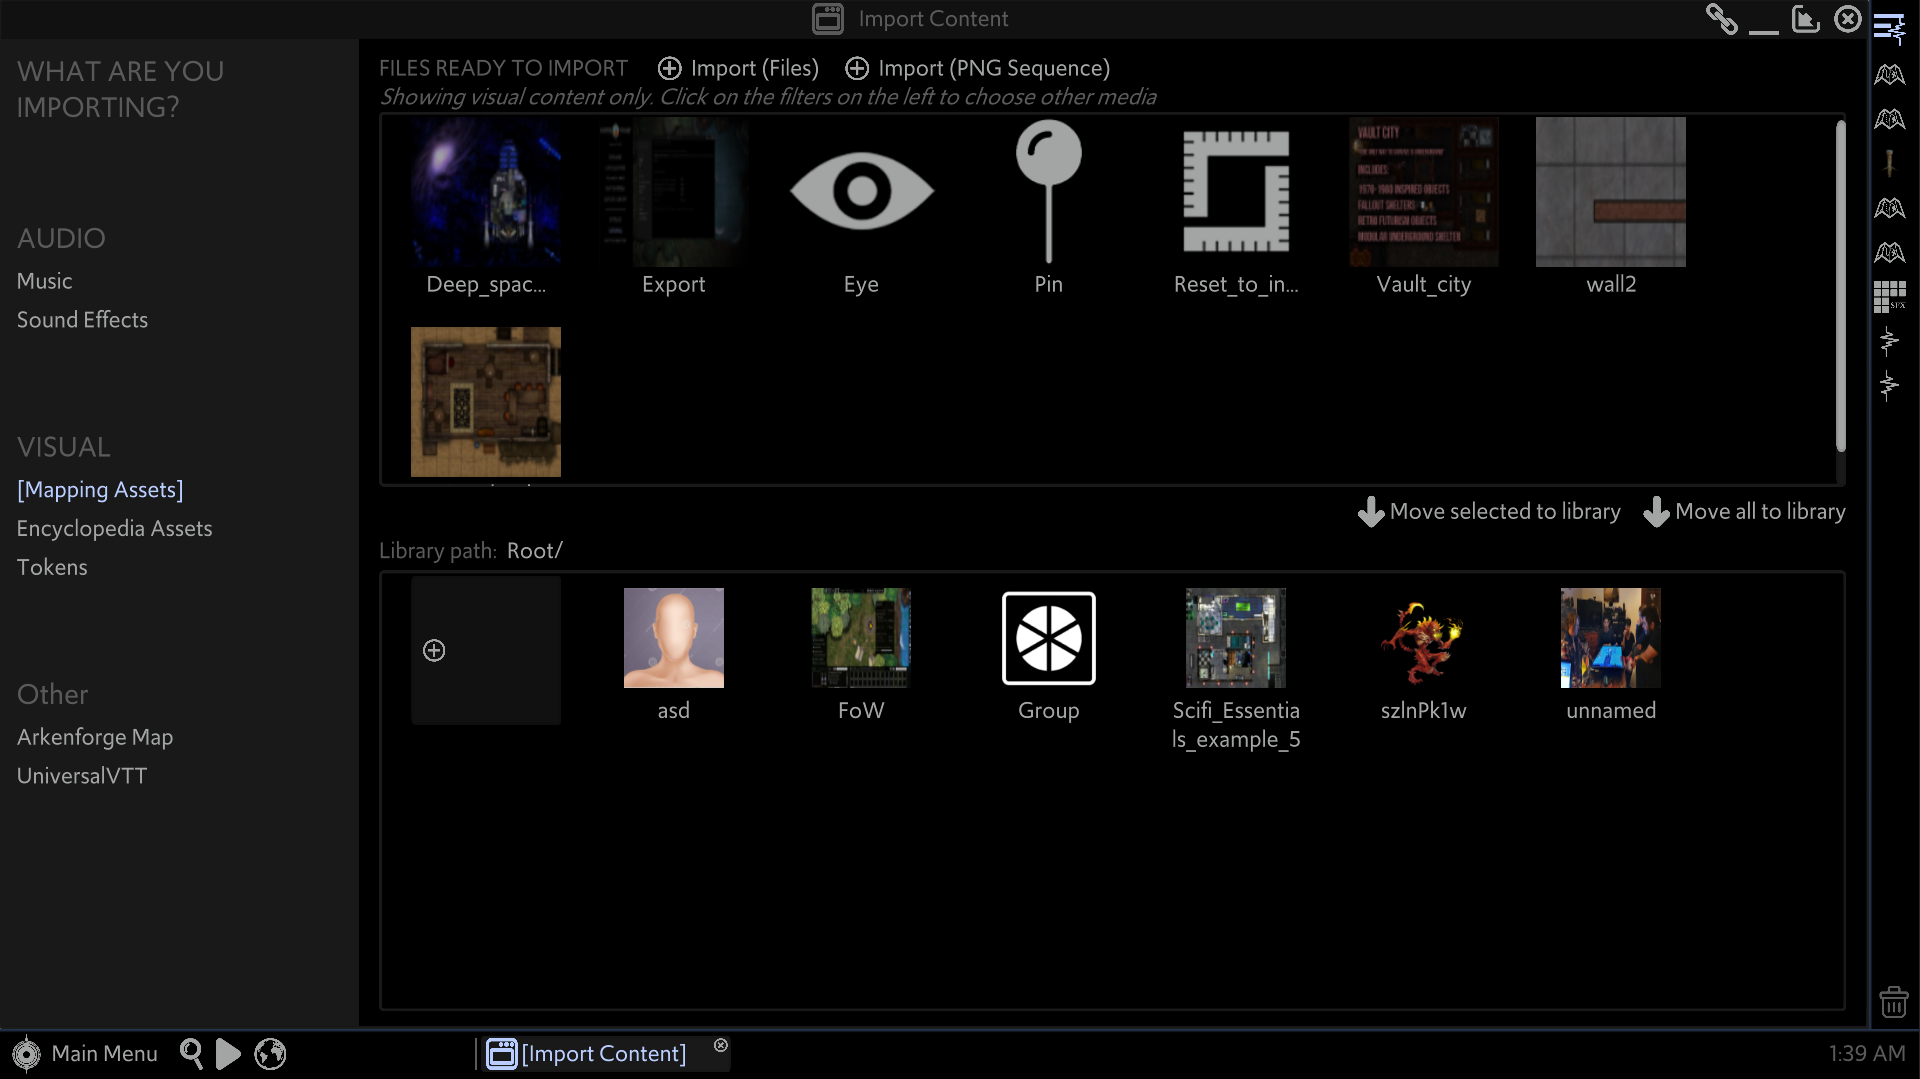 The Import Content window of the Master's Toolkit is open. The 'Mapping Assets' tab is open